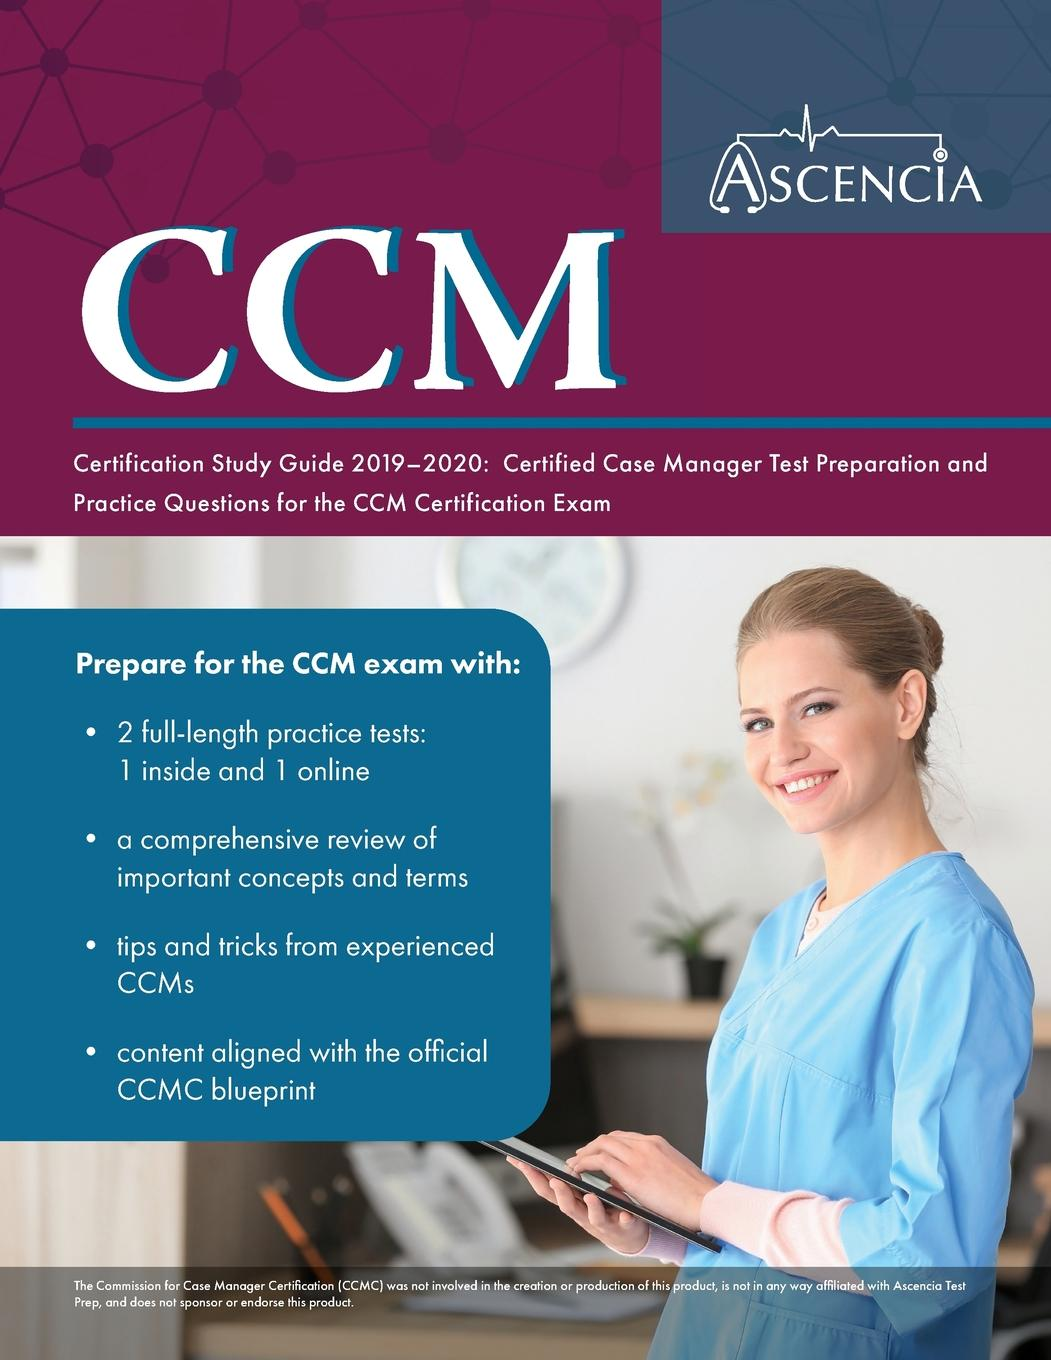 ccm certification study guide case certified manager test preparation practice paperback exam